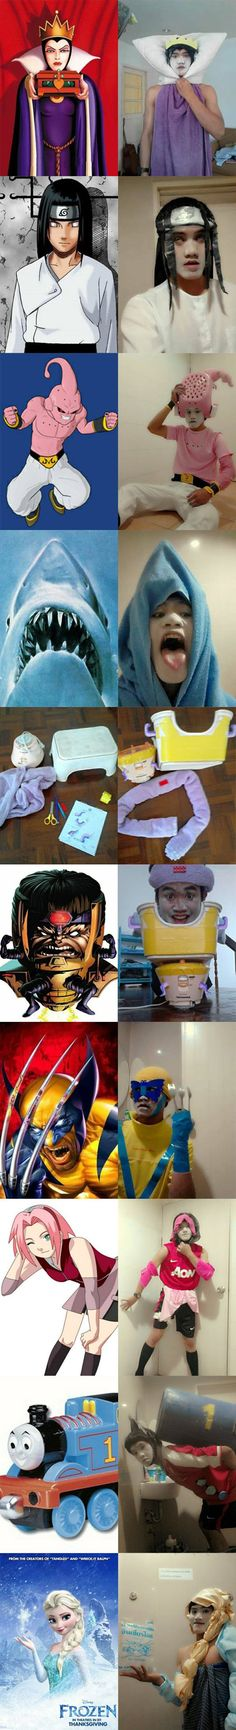 Cosplaying On a Budget // funny pictures - funny photos - funny images - funny pics - funny quotes - #lol #humor #funnypictures